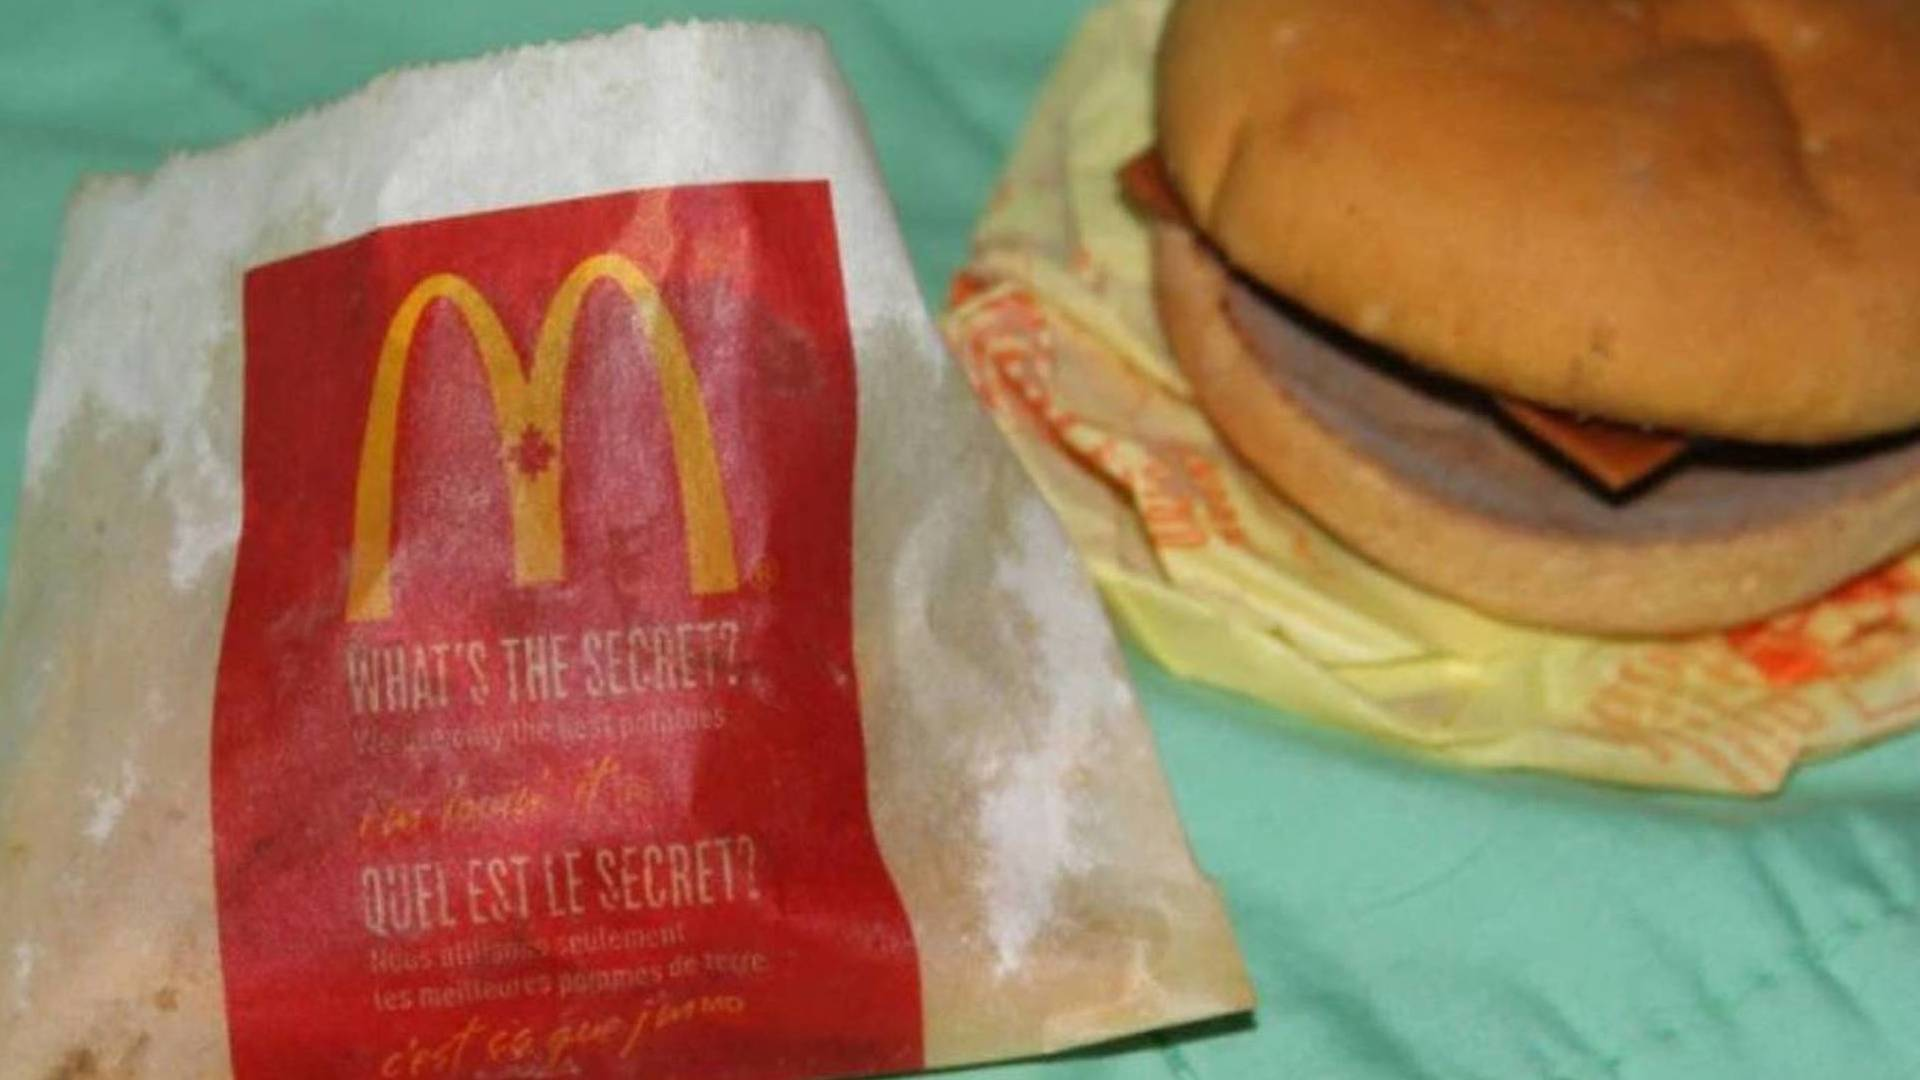 The six-year-old McDonald's cheeseburger and fries.